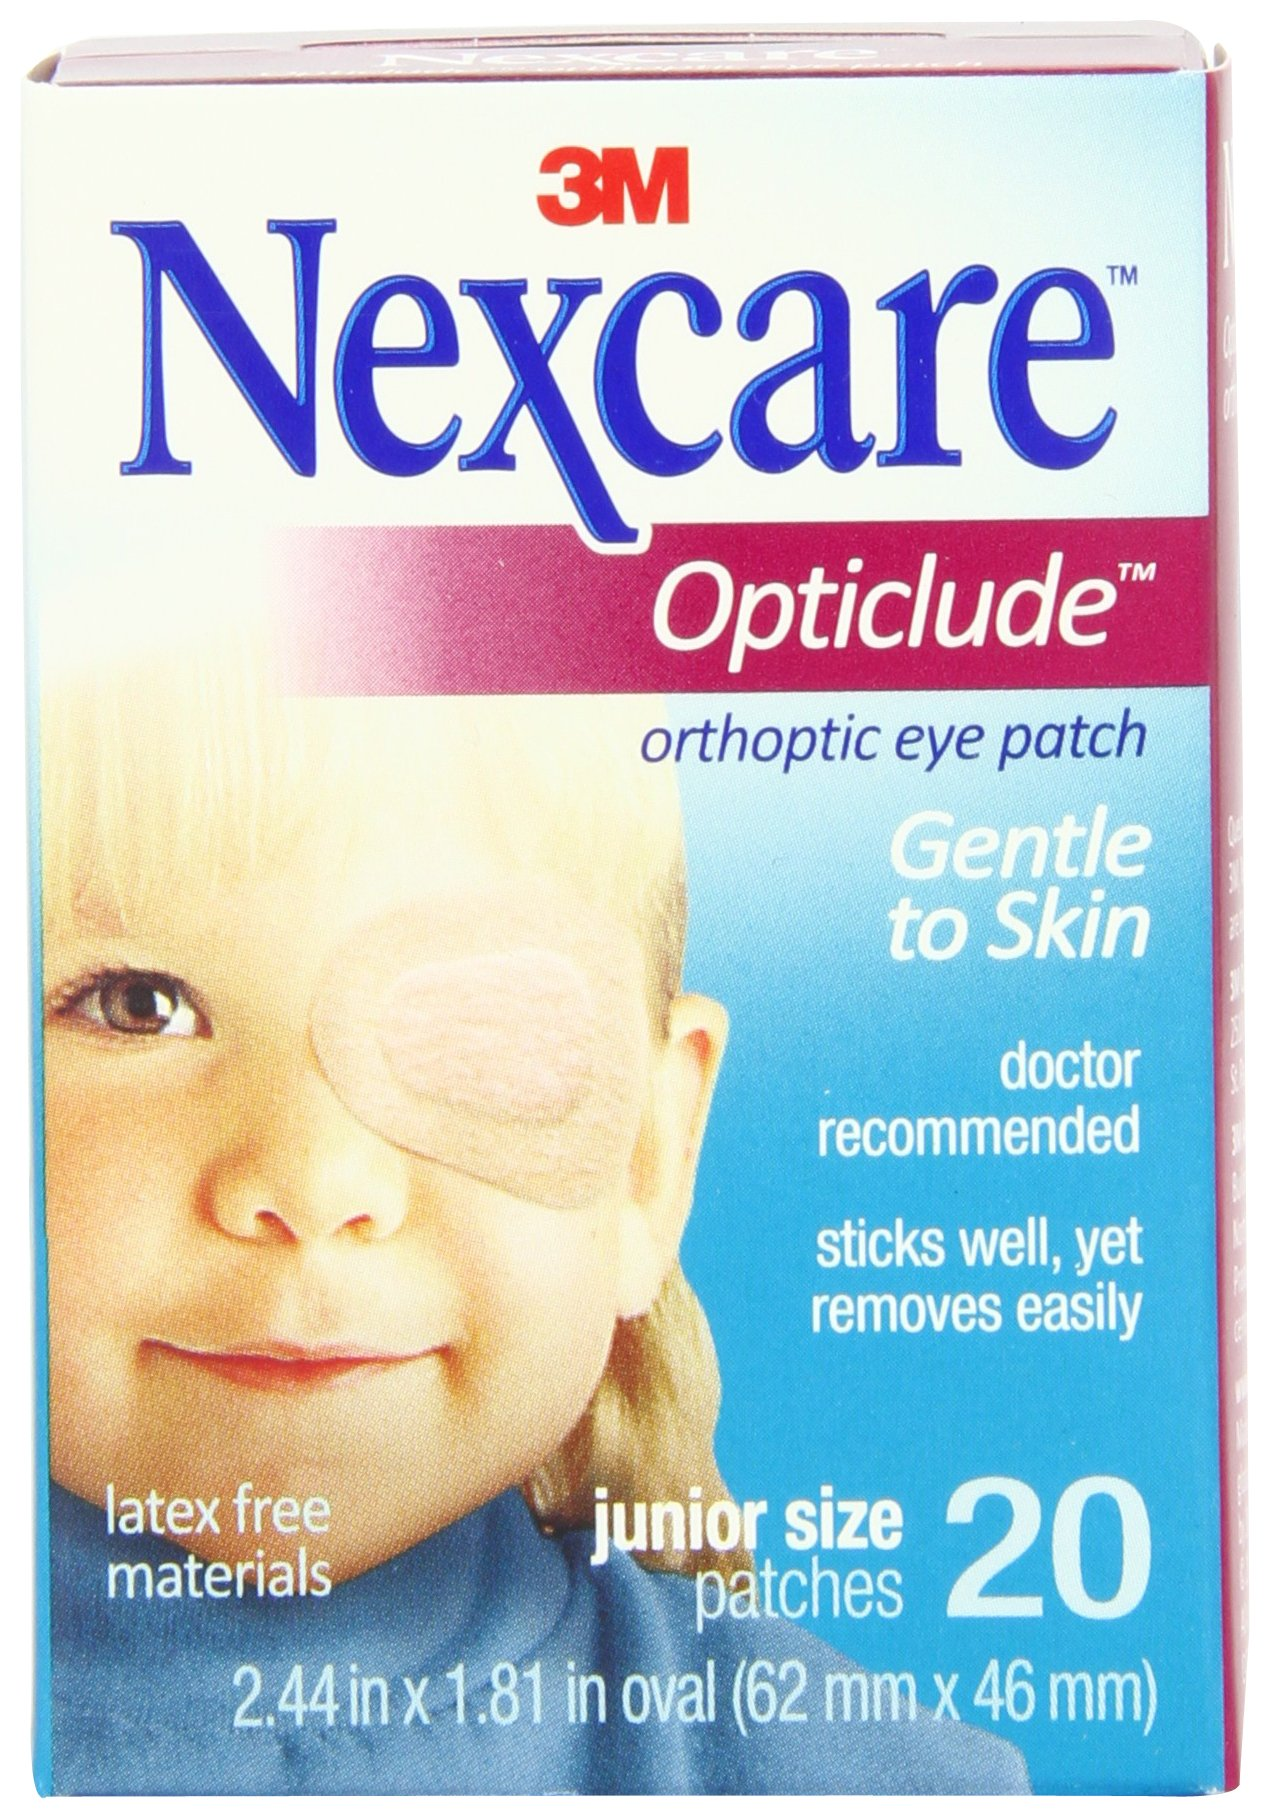 Nexcare Opticlude Orthoptic Eye Patches, Junior Size, 20-Count Boxes (Pack of 4) by Nexcare (Image #4)